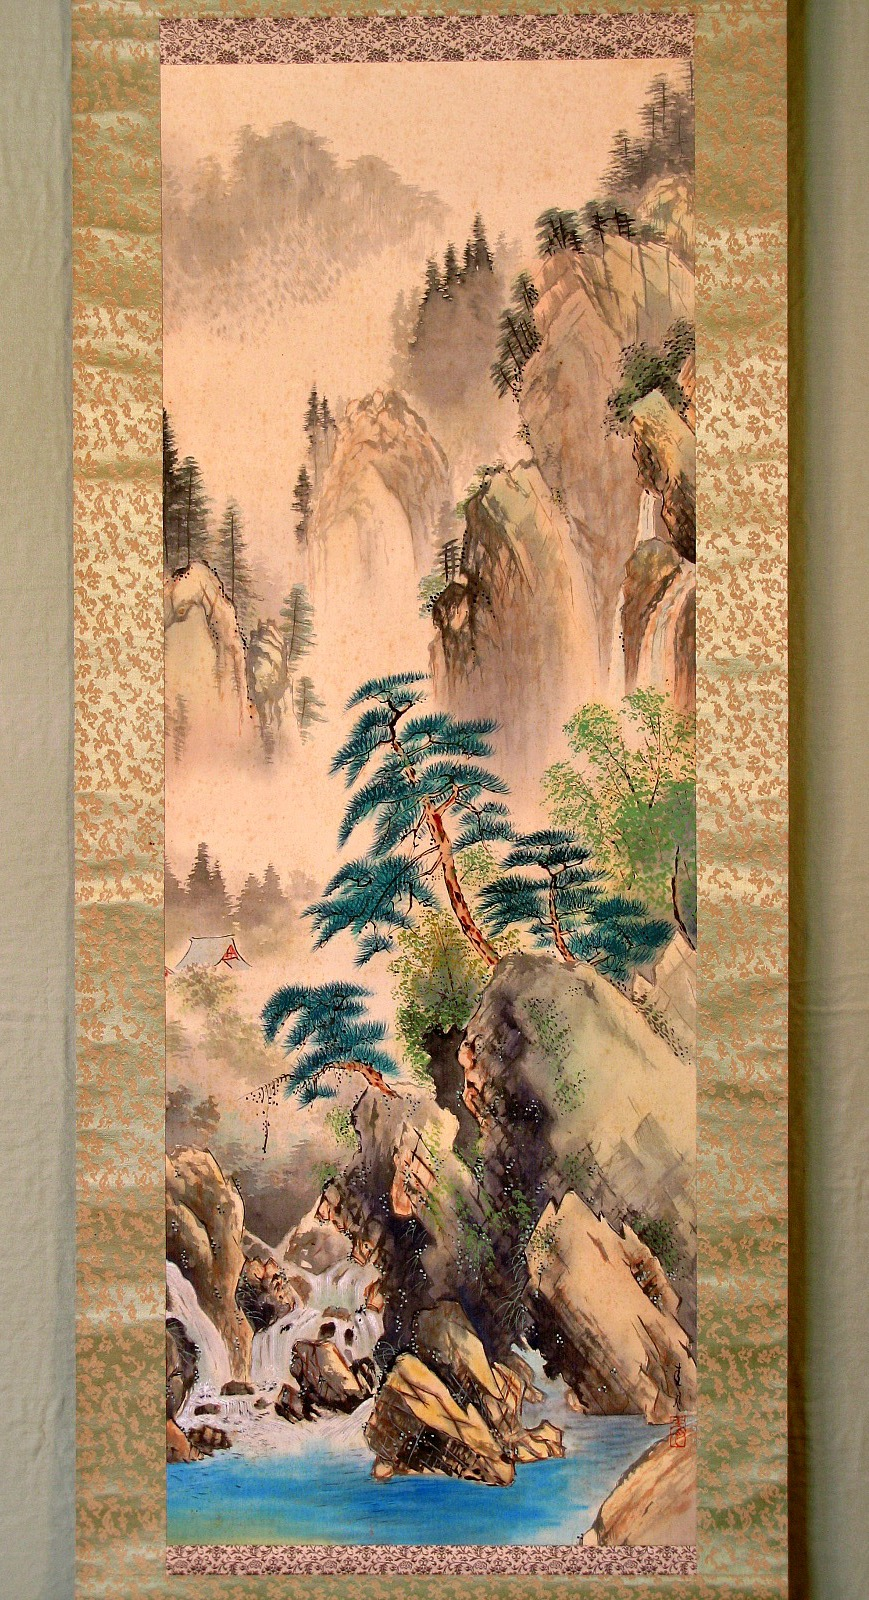 Japanese scroll paintings may 2012 for Japanese watercolor paintings